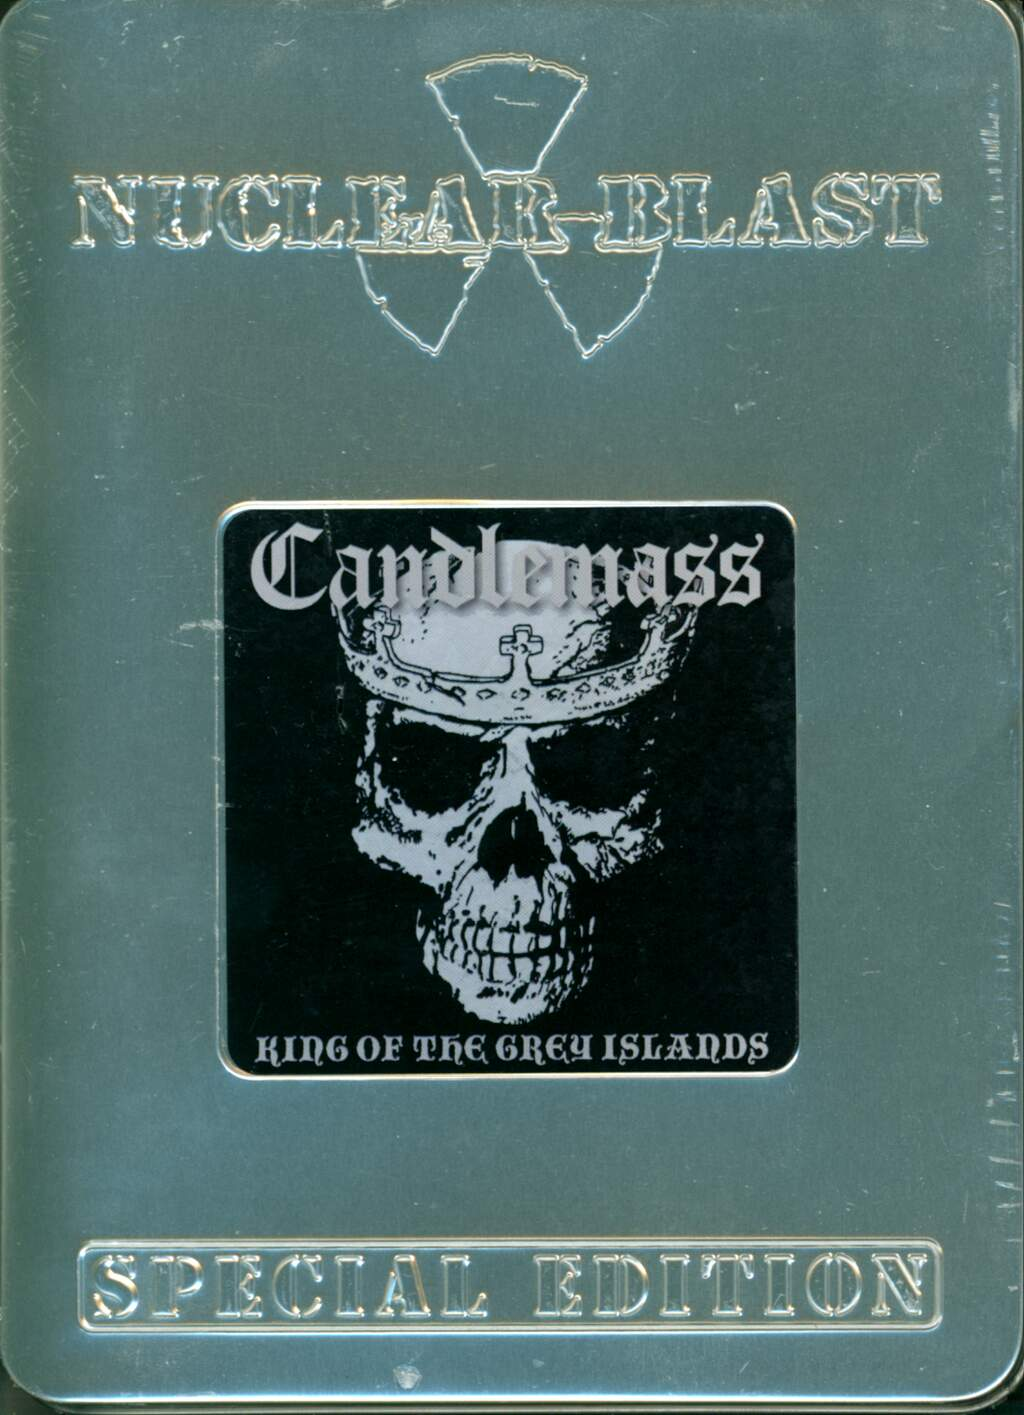 Candlemass: King Of The Grey Islands, CD